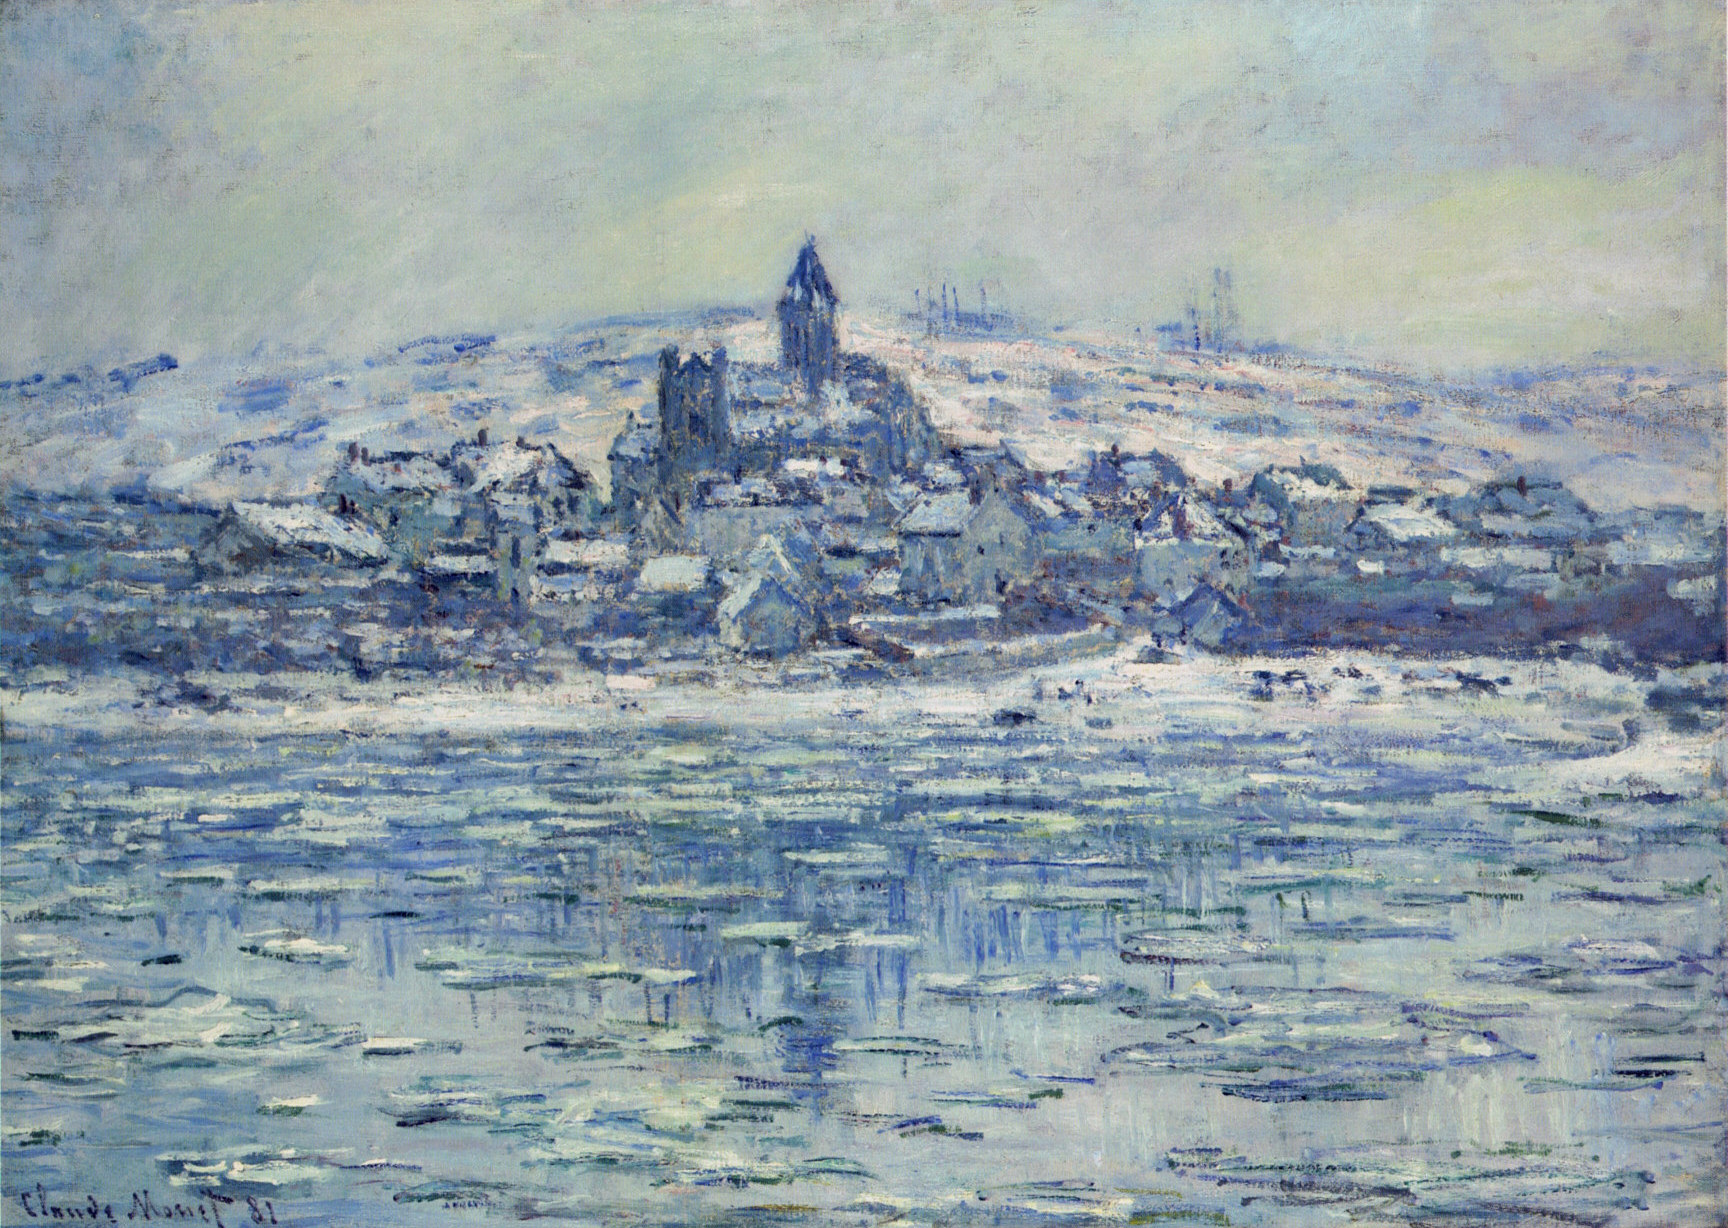 Claude Monet - Vetheuil, Ice Floes 1881